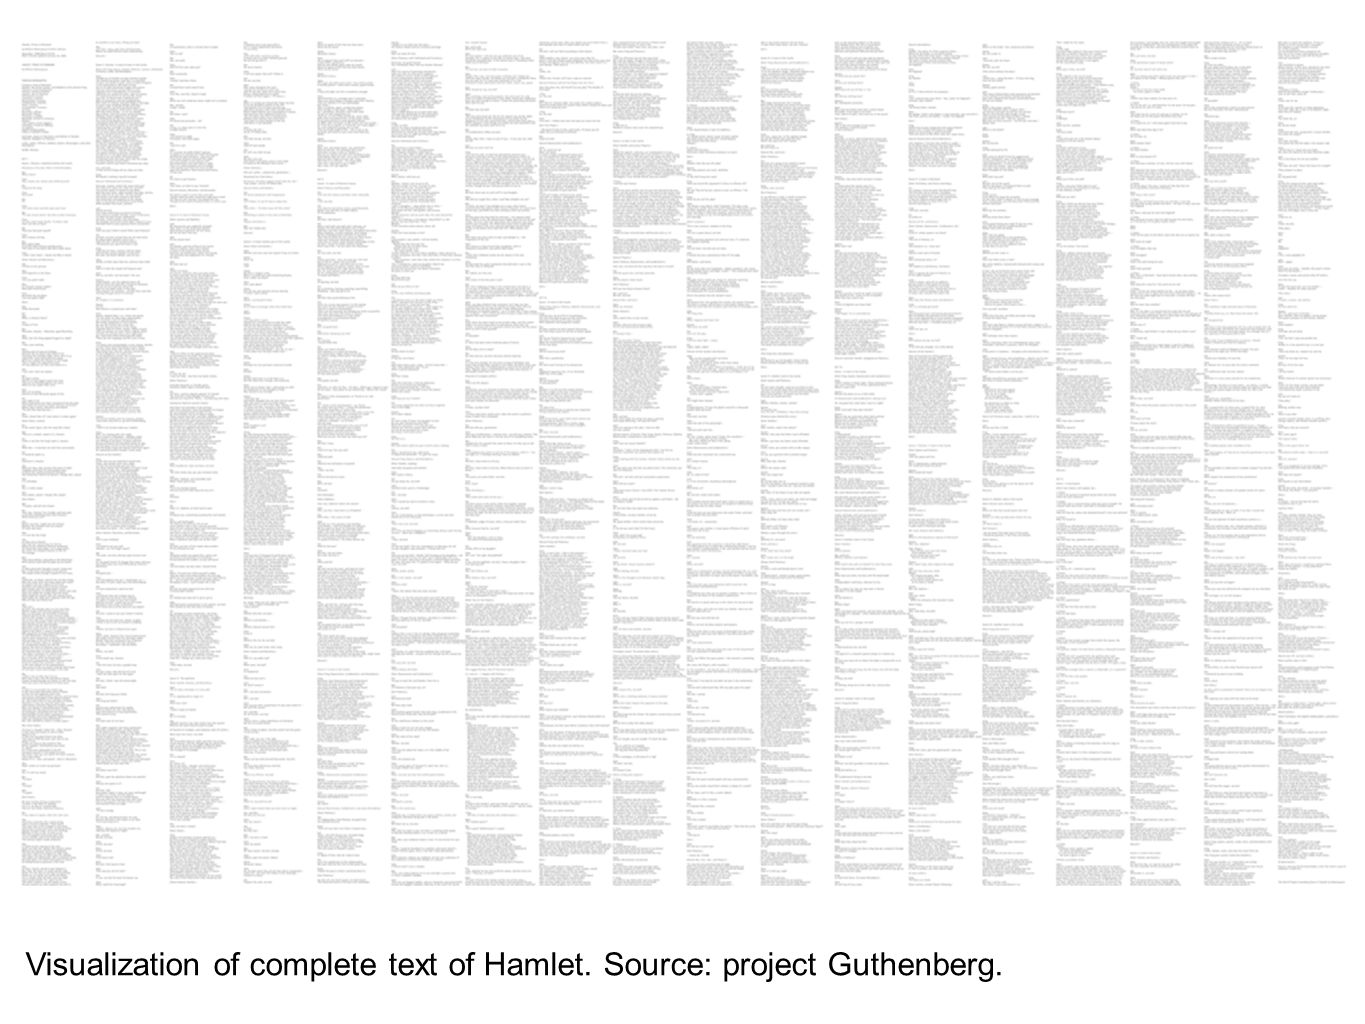 Visualization of complete text of Hamlet. Source: project Guthenberg.